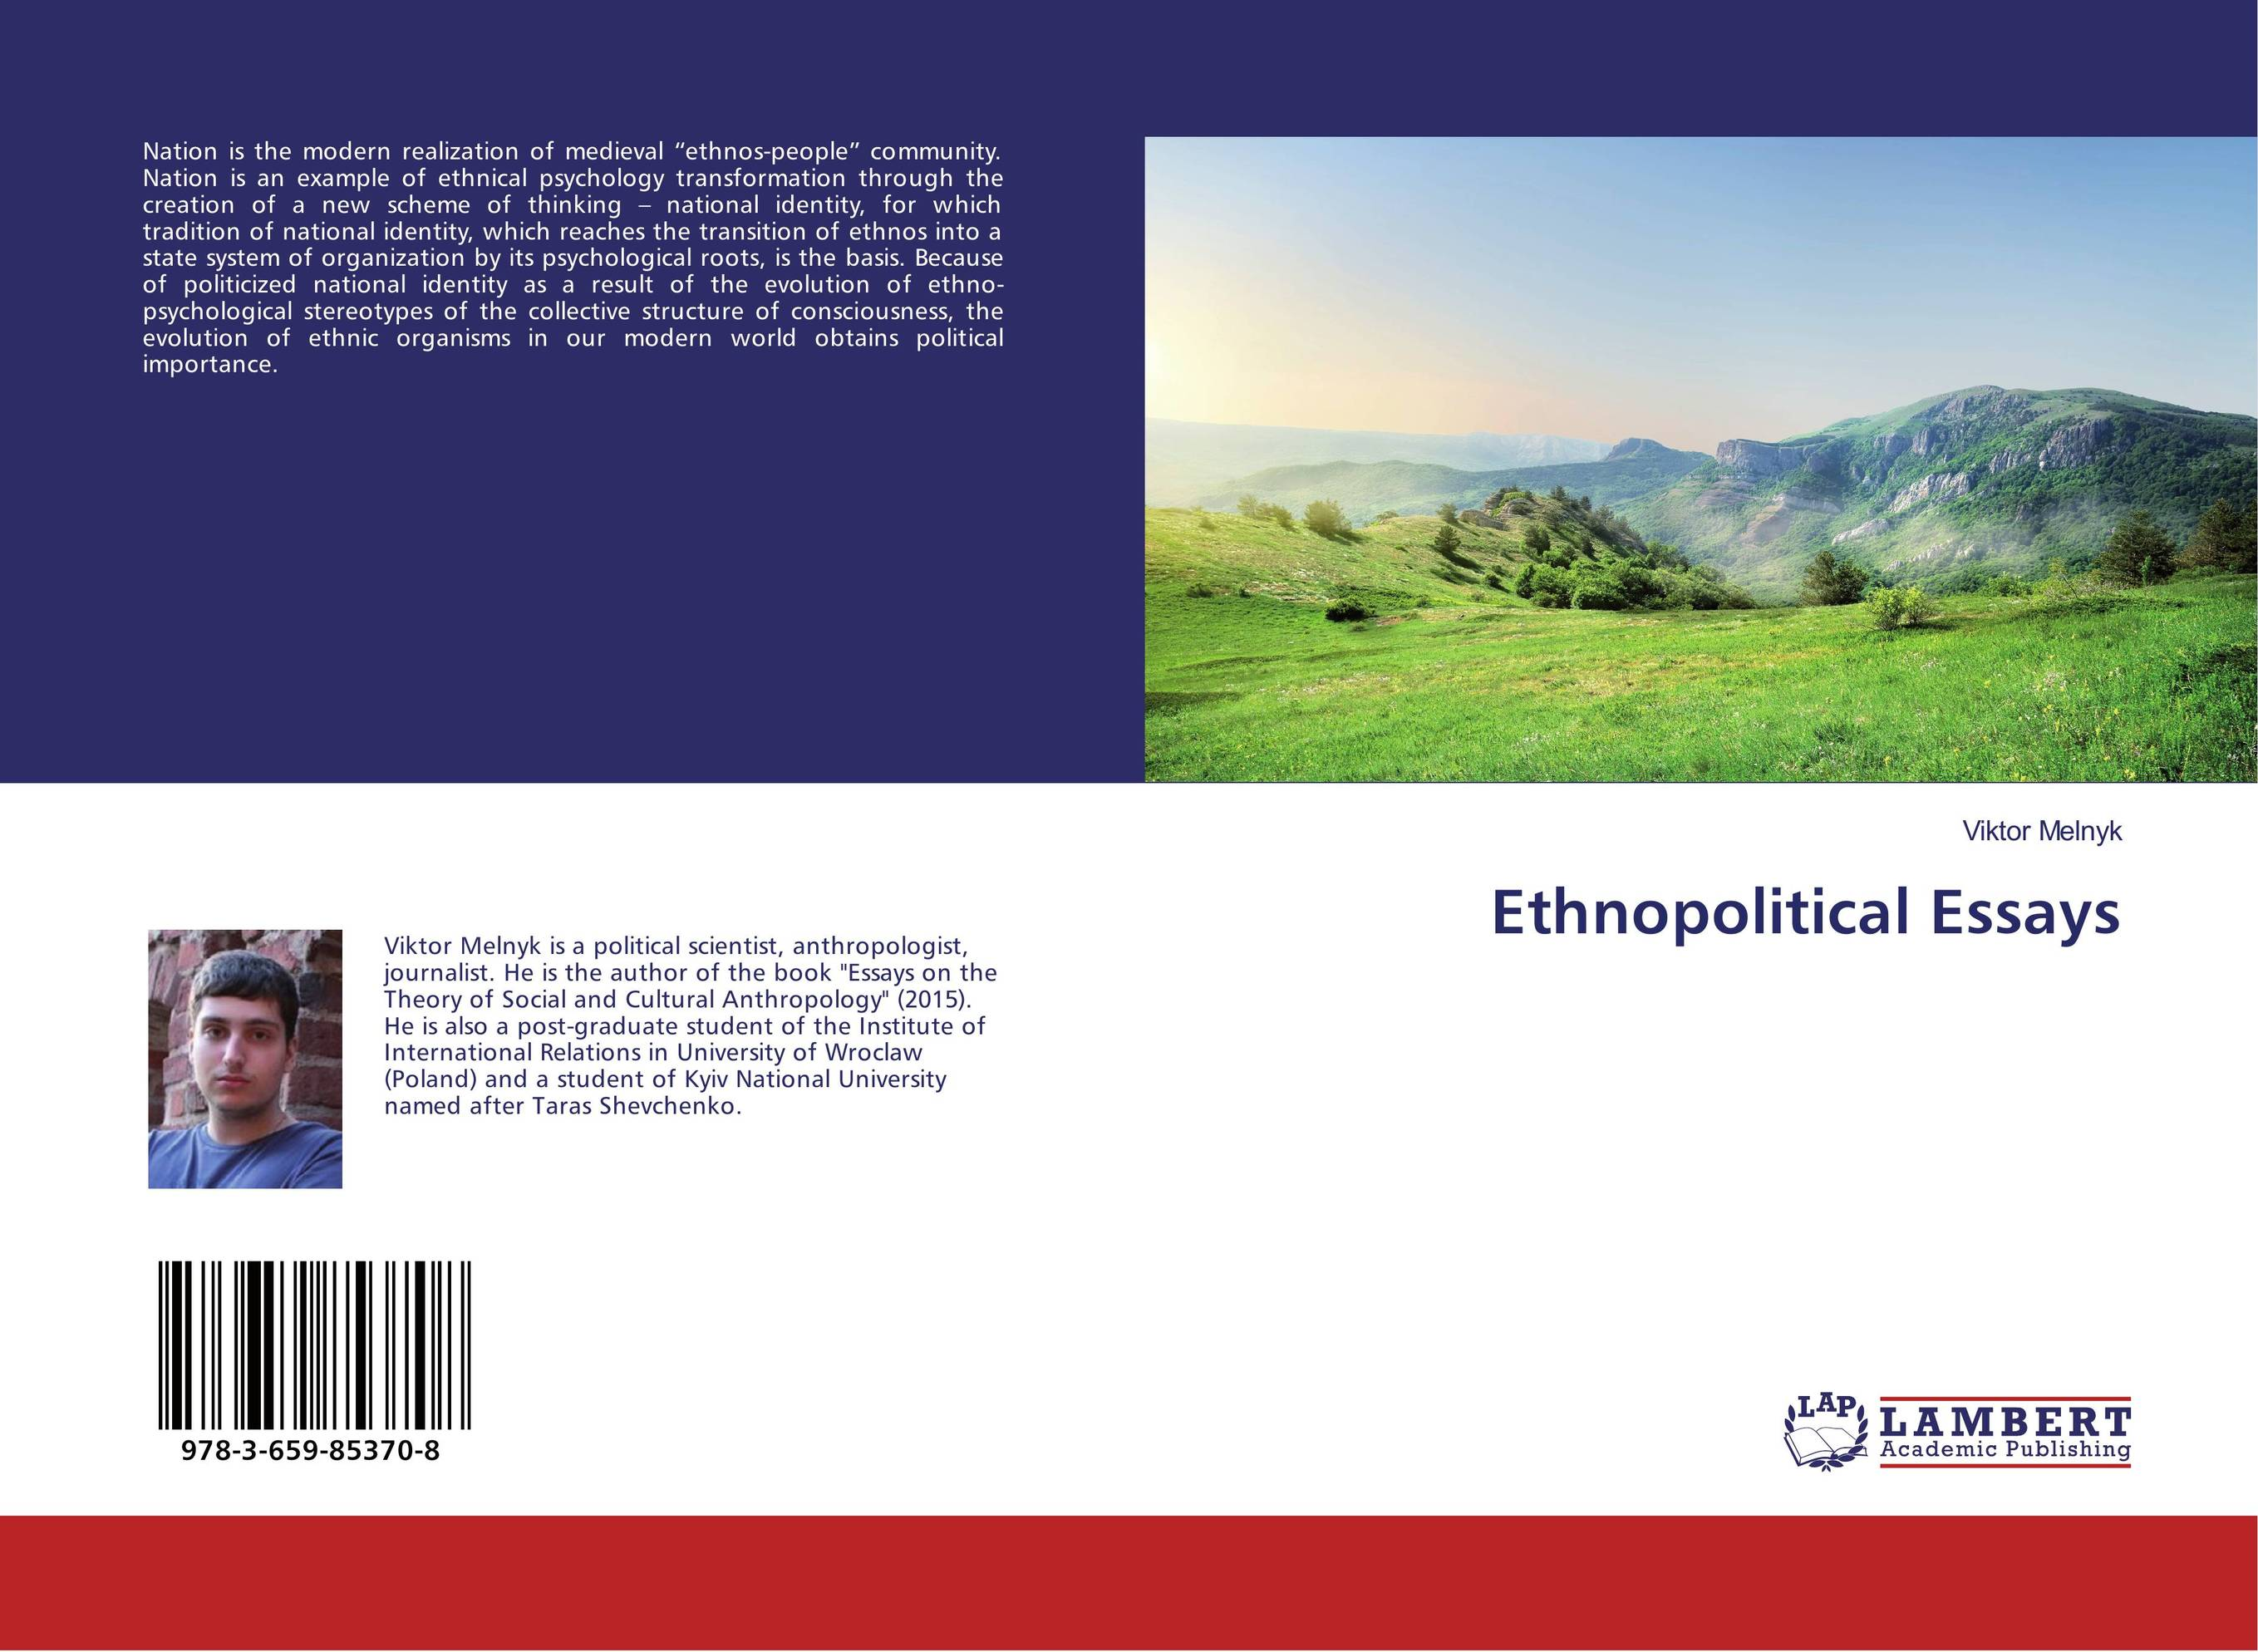 Ethnopolitical Essays joseph lane an answer to the inquiry into the state of the nation